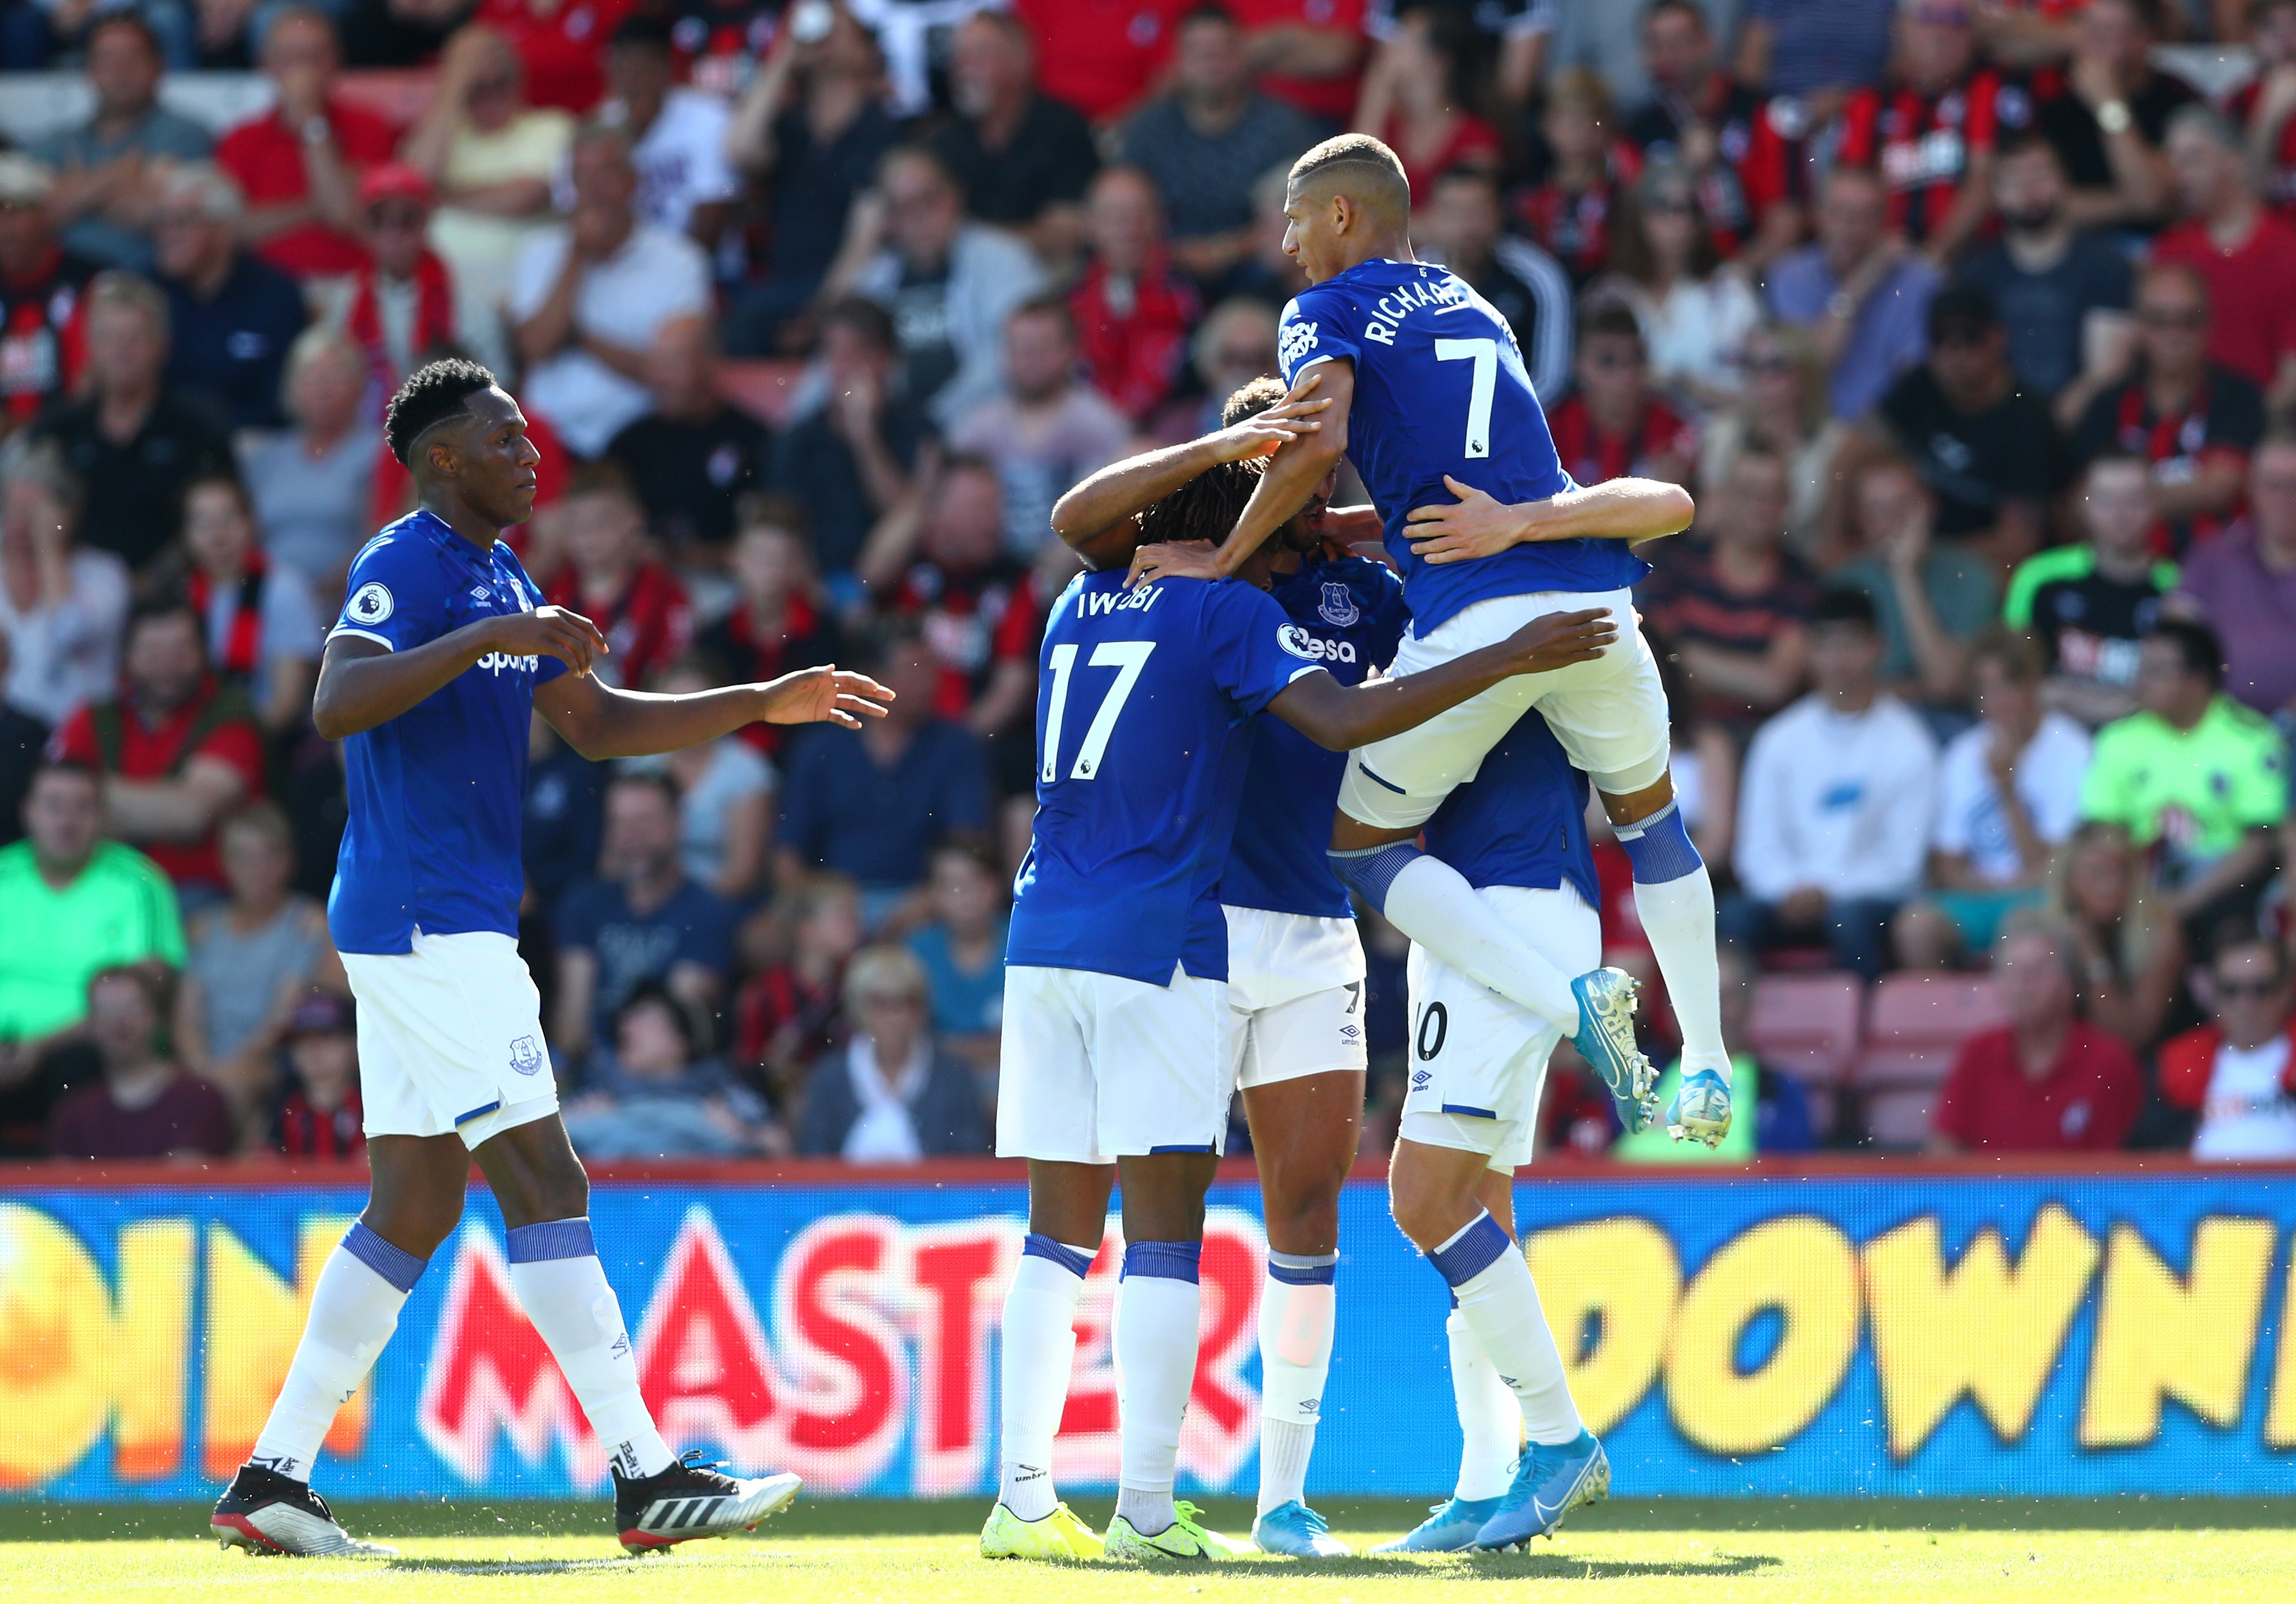 Dominic Calvert-Lewin of Everton (obscured) celebrates after scoring his team's first goal with team mates during the Premier League match between AFC Bournemouth and Everton FC at Vitality Stadium on September 15, 2019 in Bournemouth, United Kingdom.